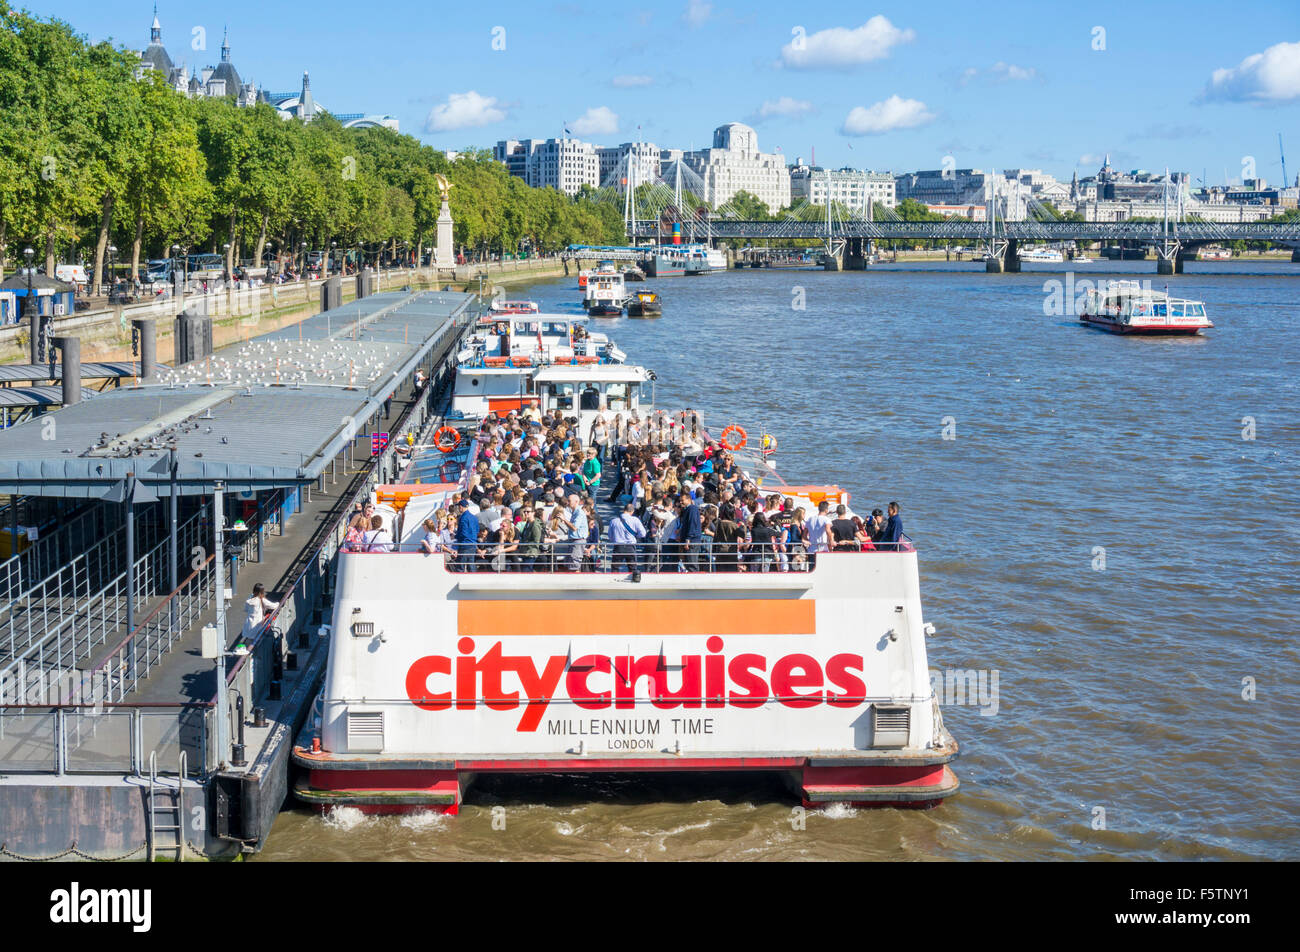 River Thames cruise boats on the Bank of the River Thames London England GB UK EU Europe - Stock Image